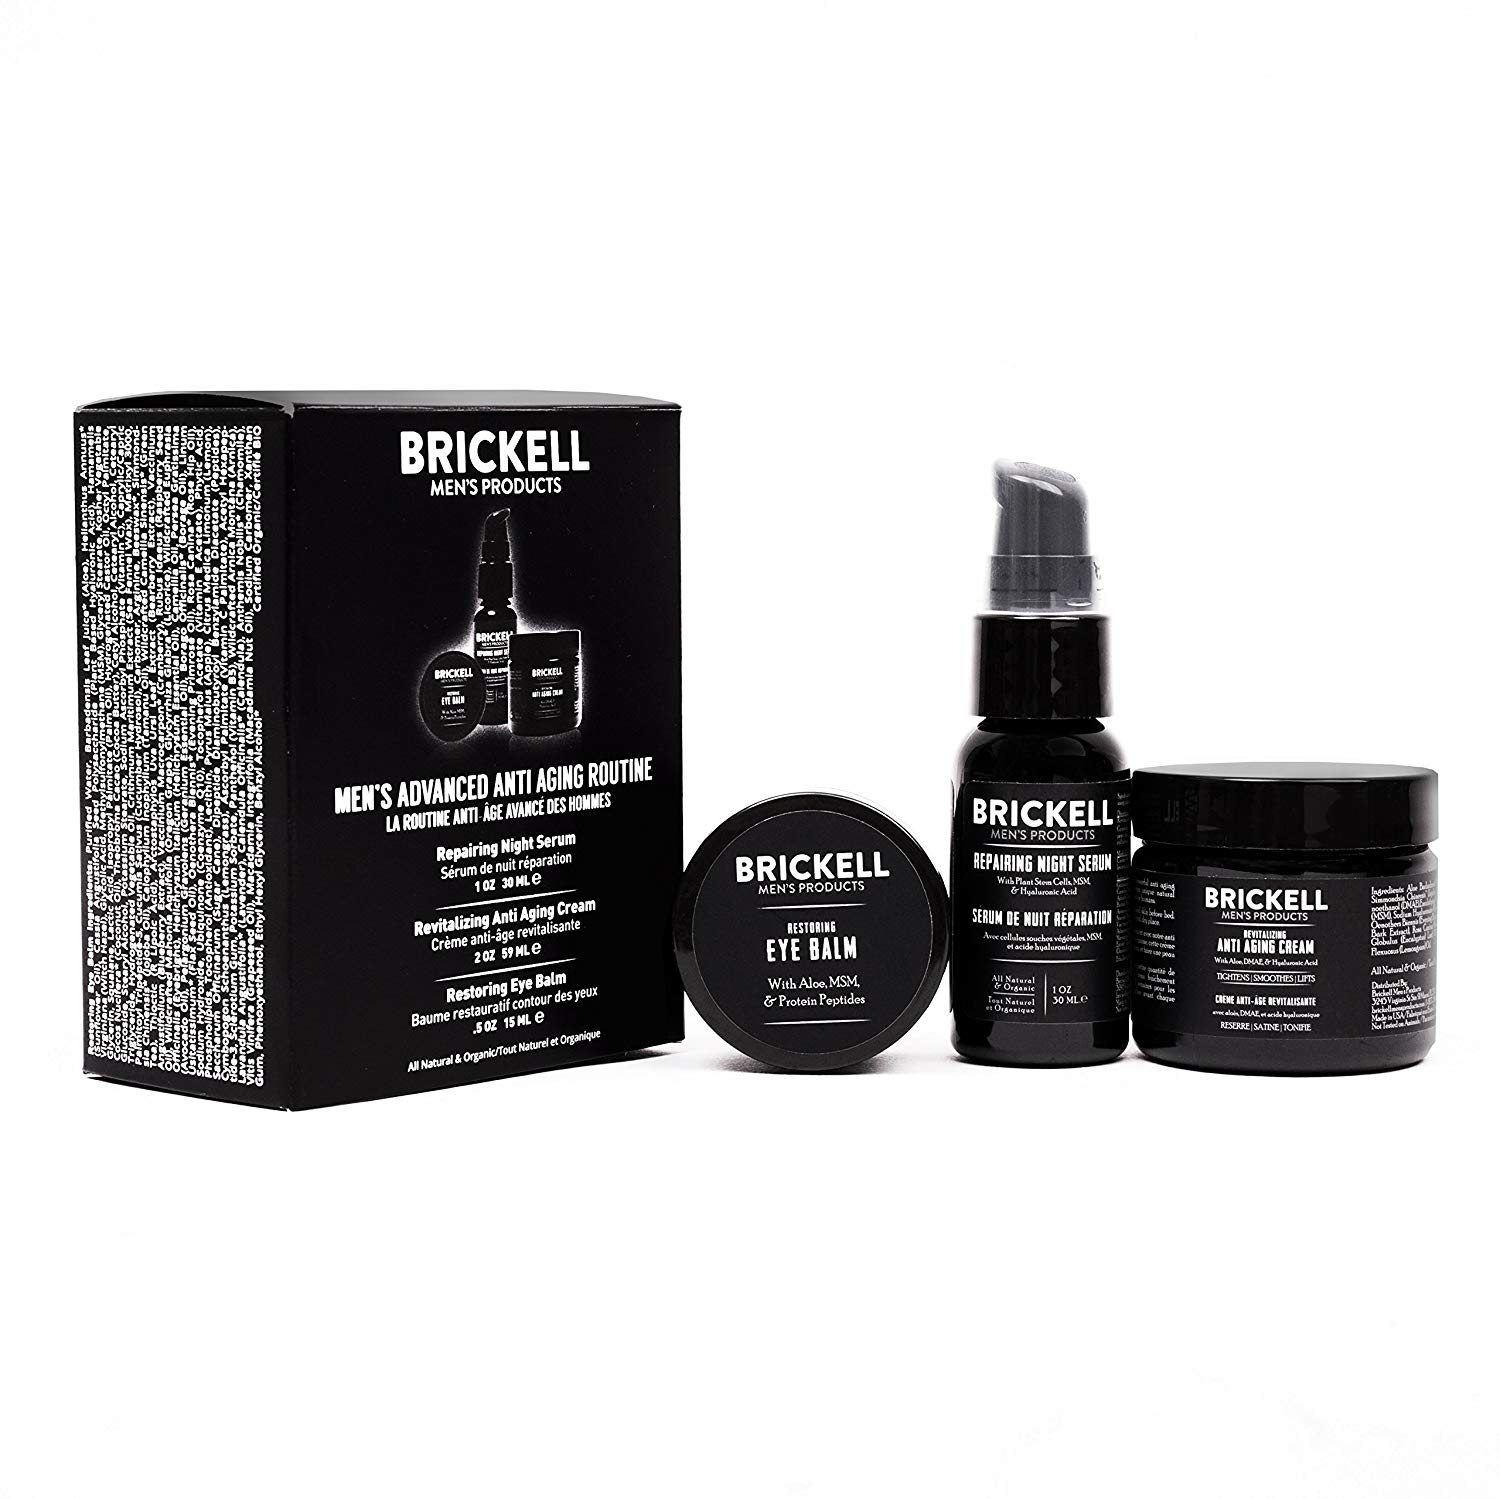 Brickell for Men anti-aging kit with eye balm, anti-aging serum and anti-aging cream